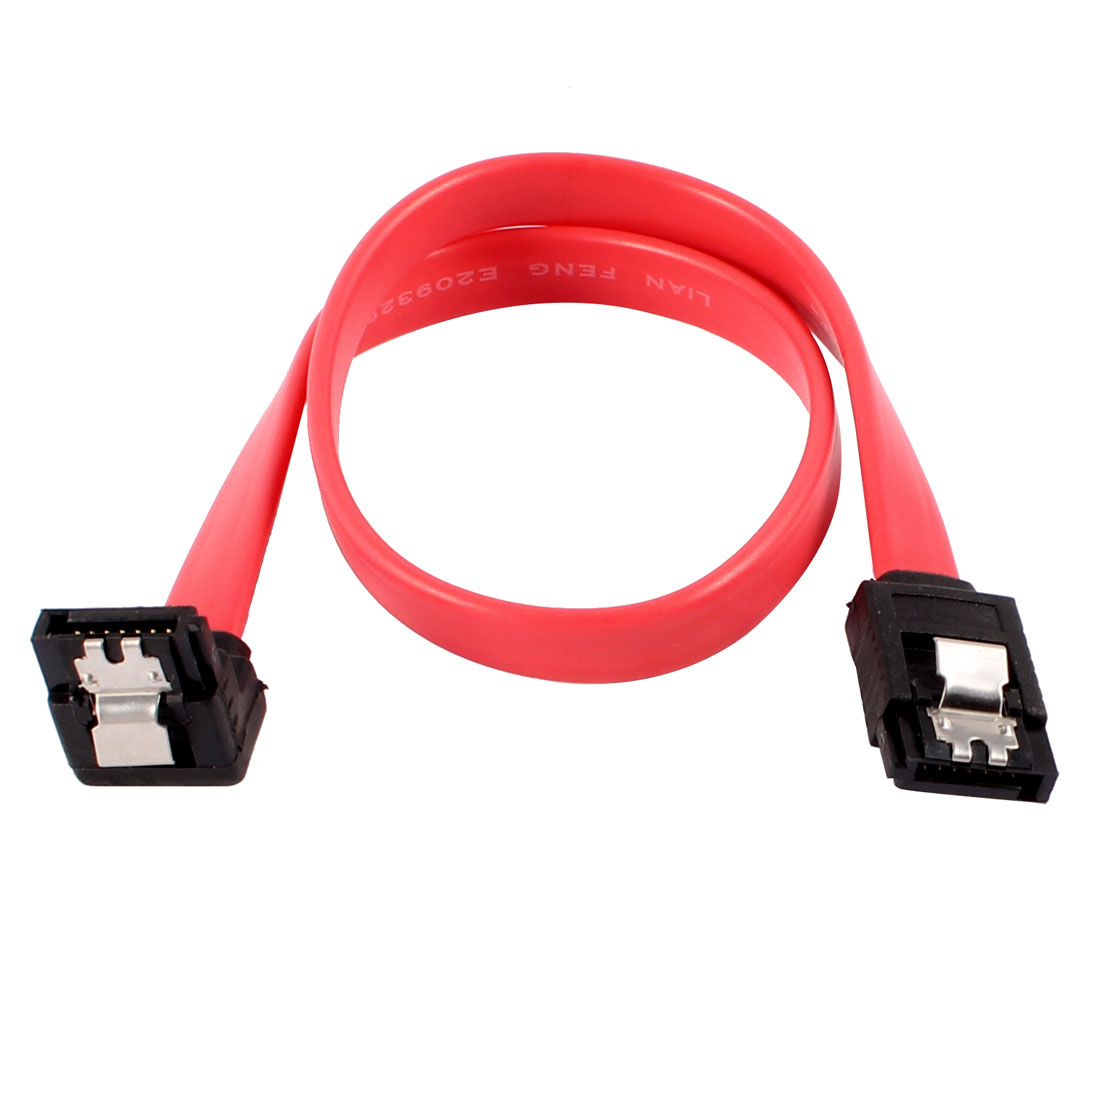 "12"" Sleeved High Speed Serial ATA SATA 7 Pin HDD Data Cable Adapter Red"